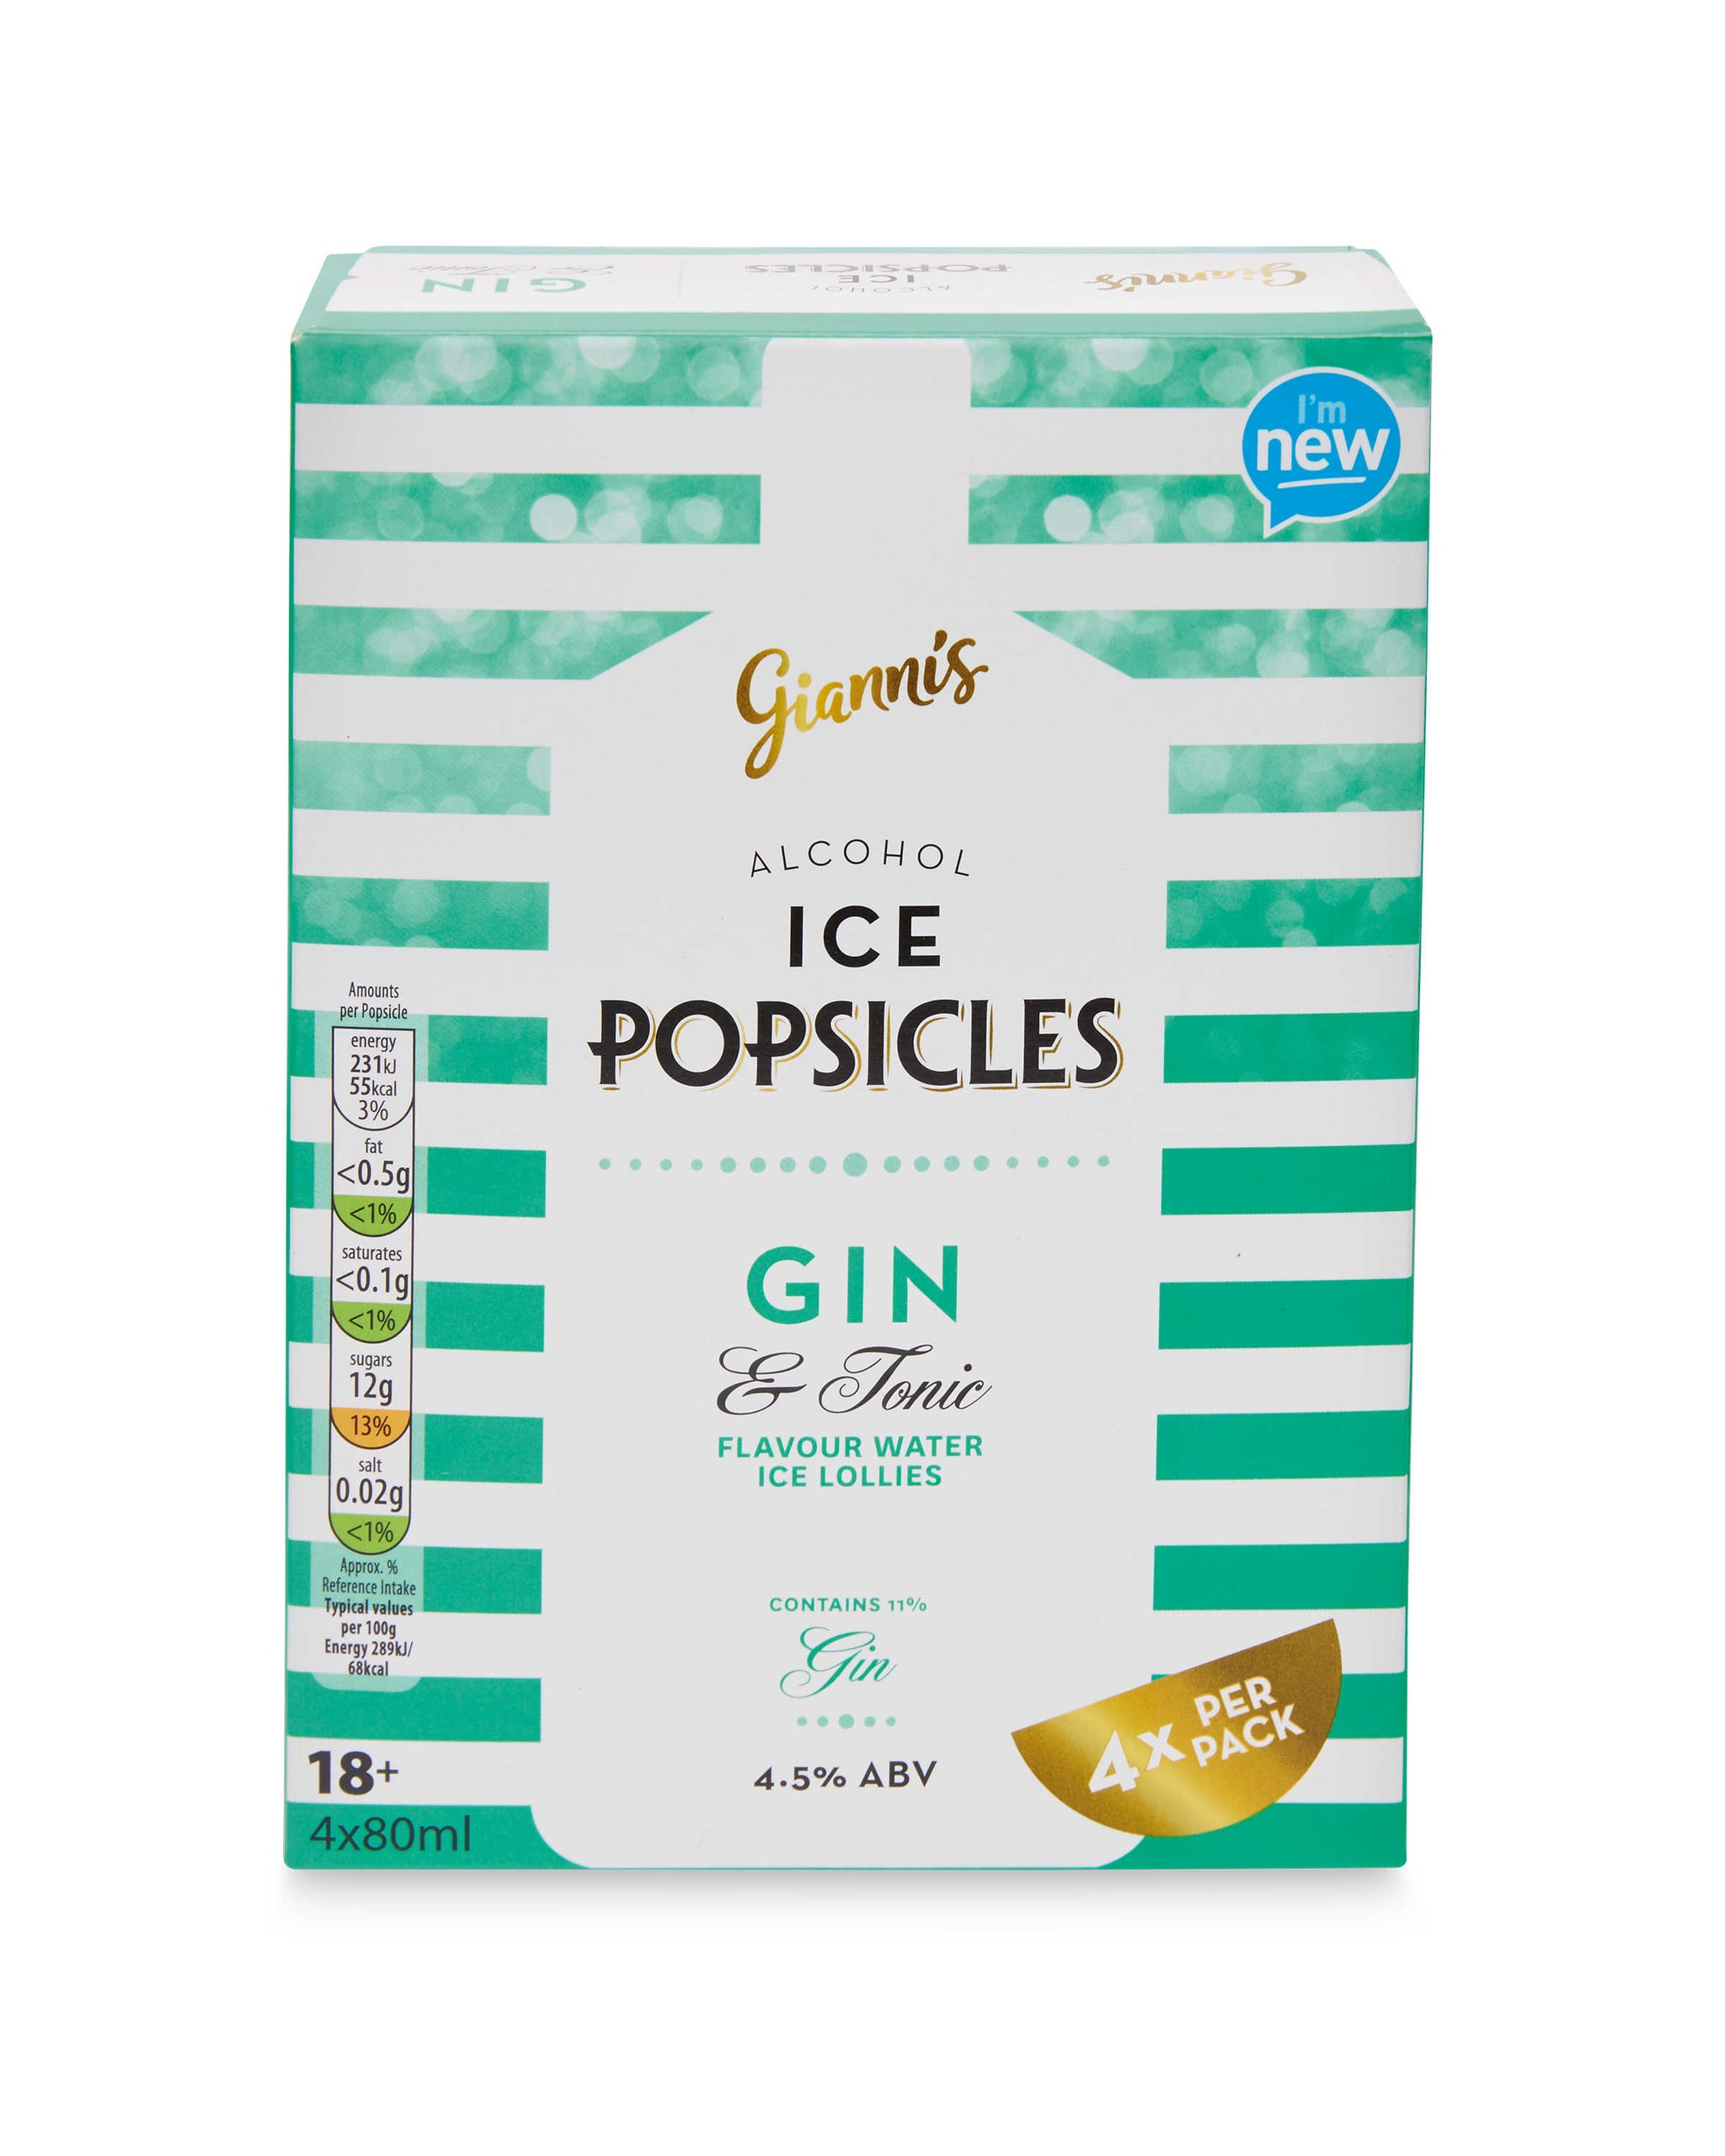 425481a5ea568676 Gin   Tonic Popsicle Aldi Making Your Summer Dreams Come True With Alcoholic Popsicles